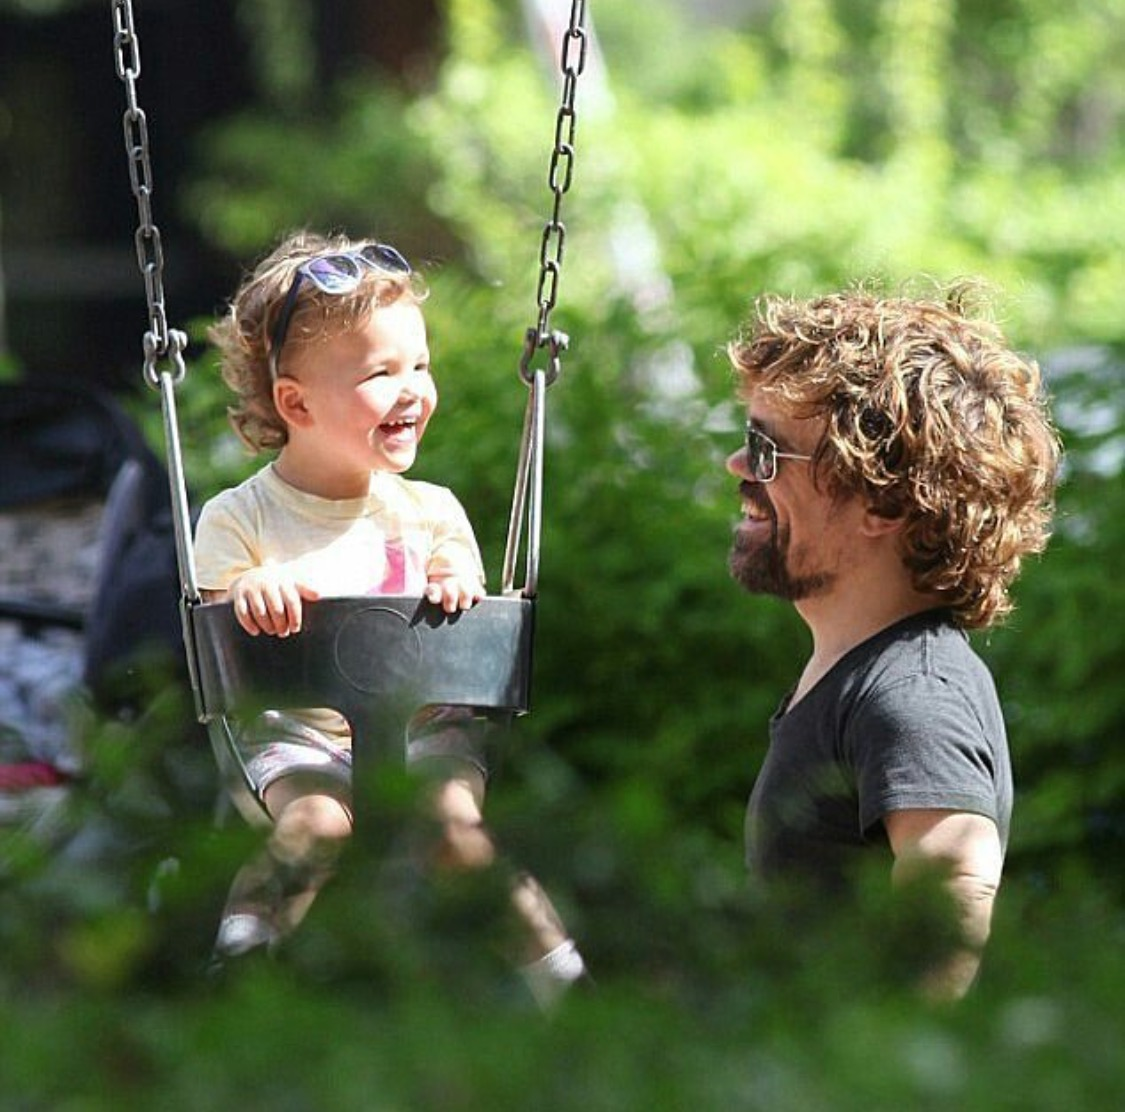 GAME of Thrones star Peter Dinklage had his limbs pulled ...